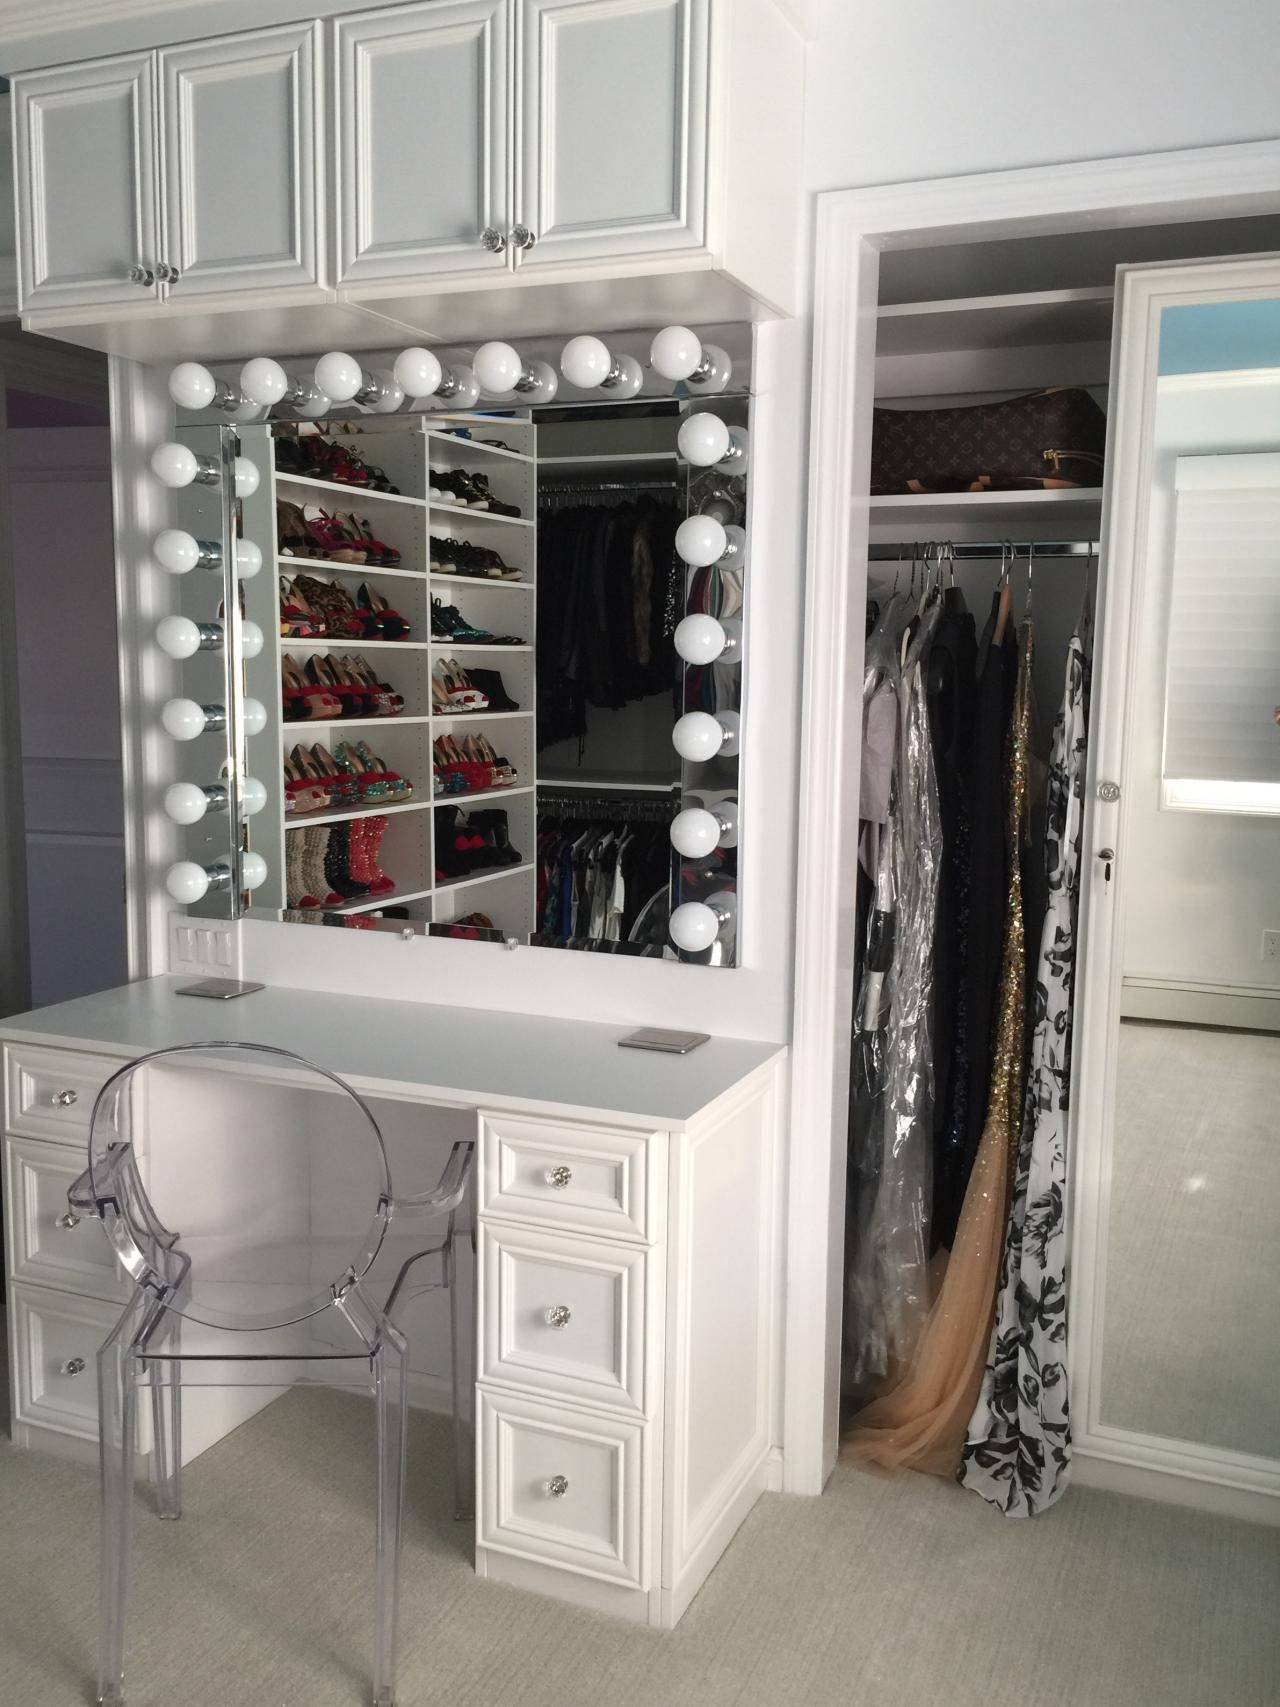 Glamorize Your Vanity Mirror With Hollywood Style Hgtv